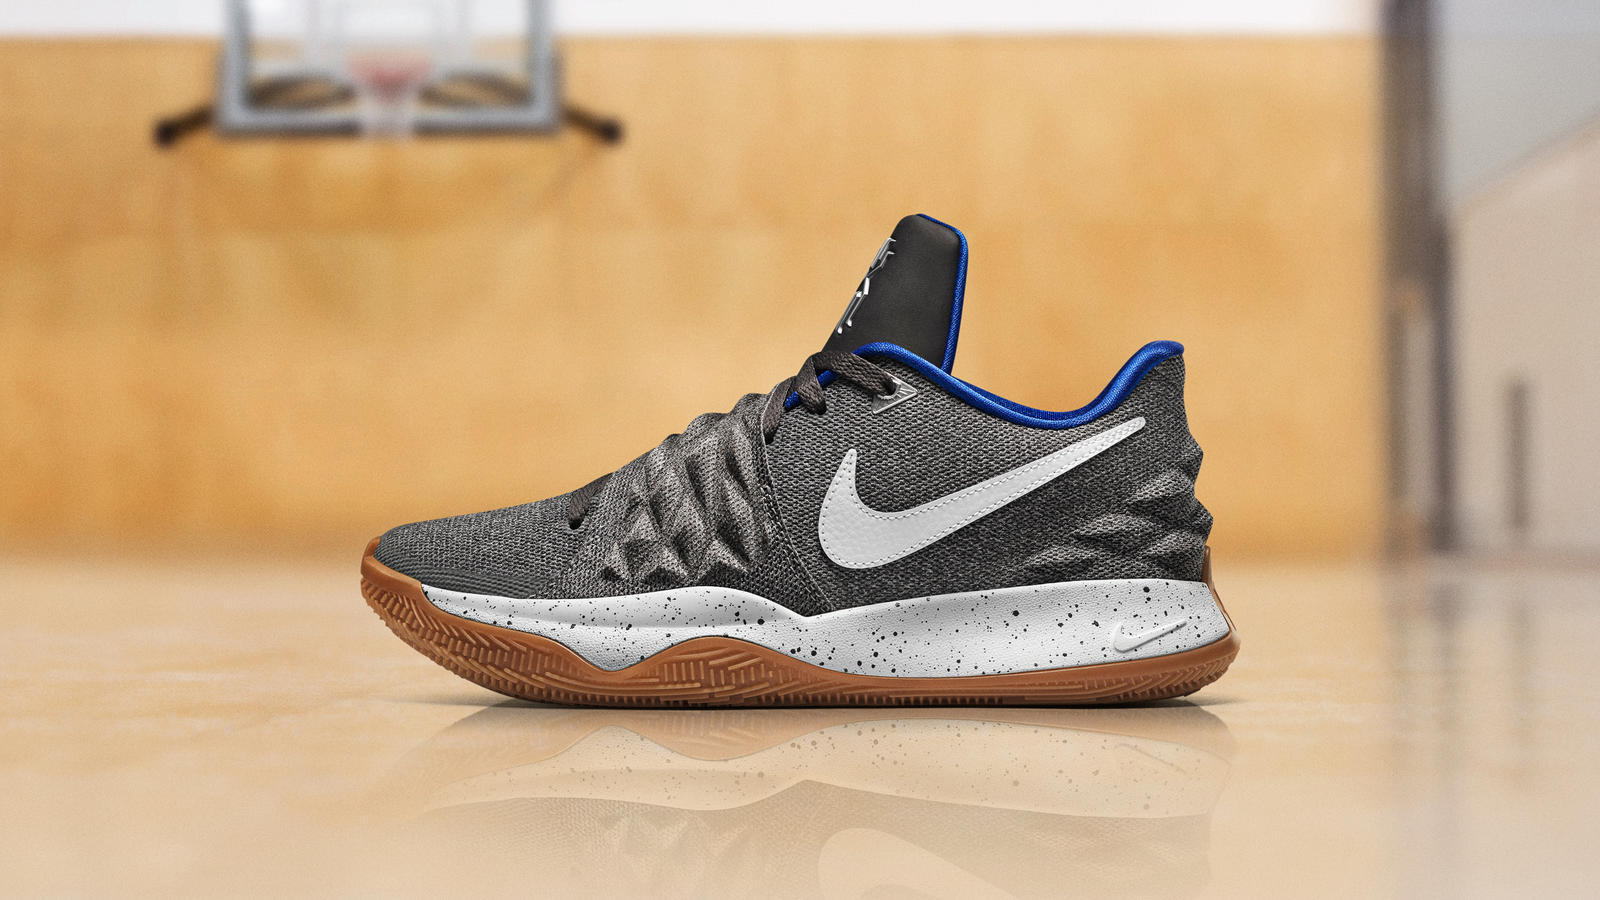 new product 02d3c d10e8 The Nike Kyrie Low Gets More Zoom Air Cushioning and ...